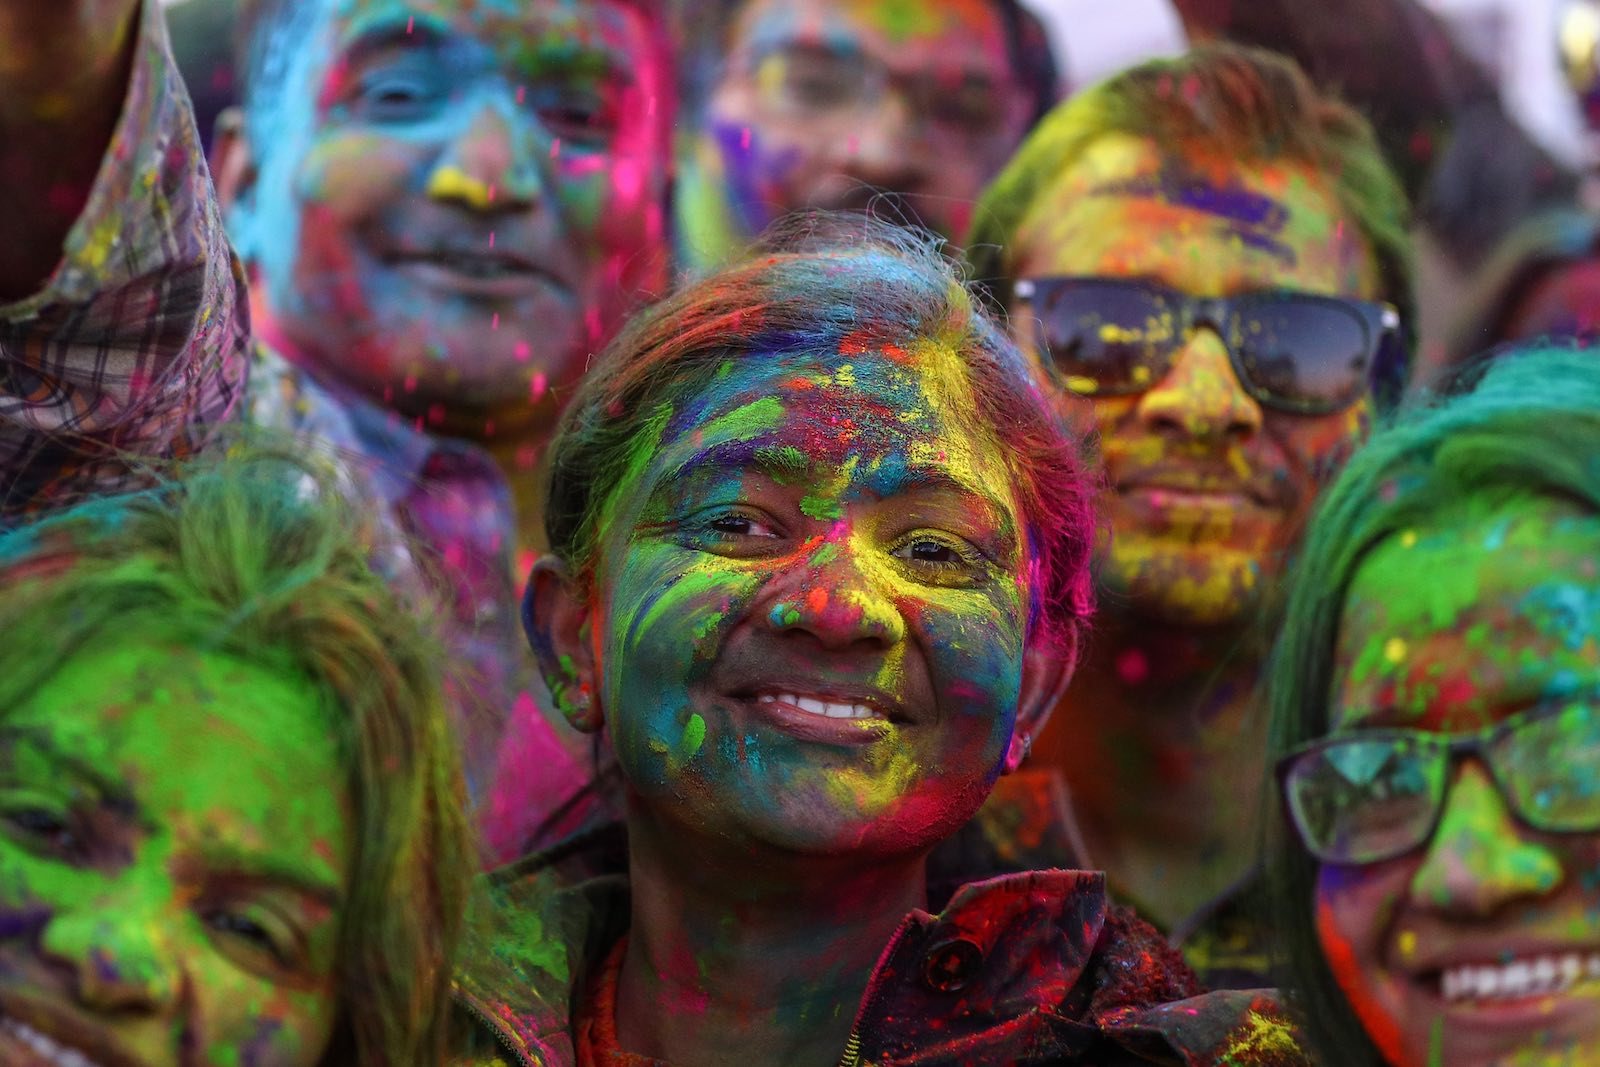 Holi Festival celebrations in Chicago (Photo: Bilgin S. Sasmaz via Getty)